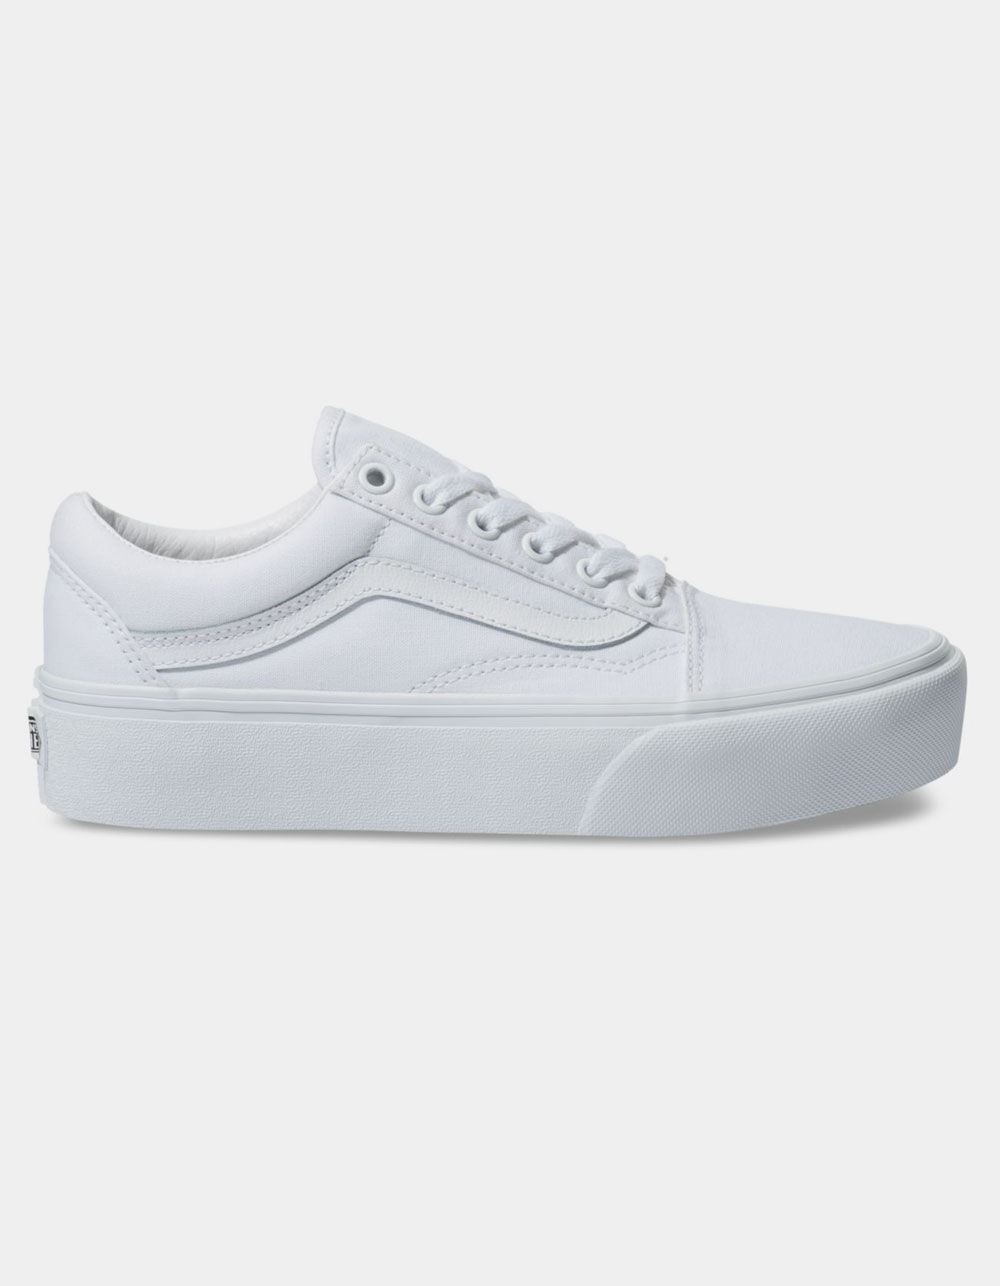 VANS Old Skool Platform True White Shoes